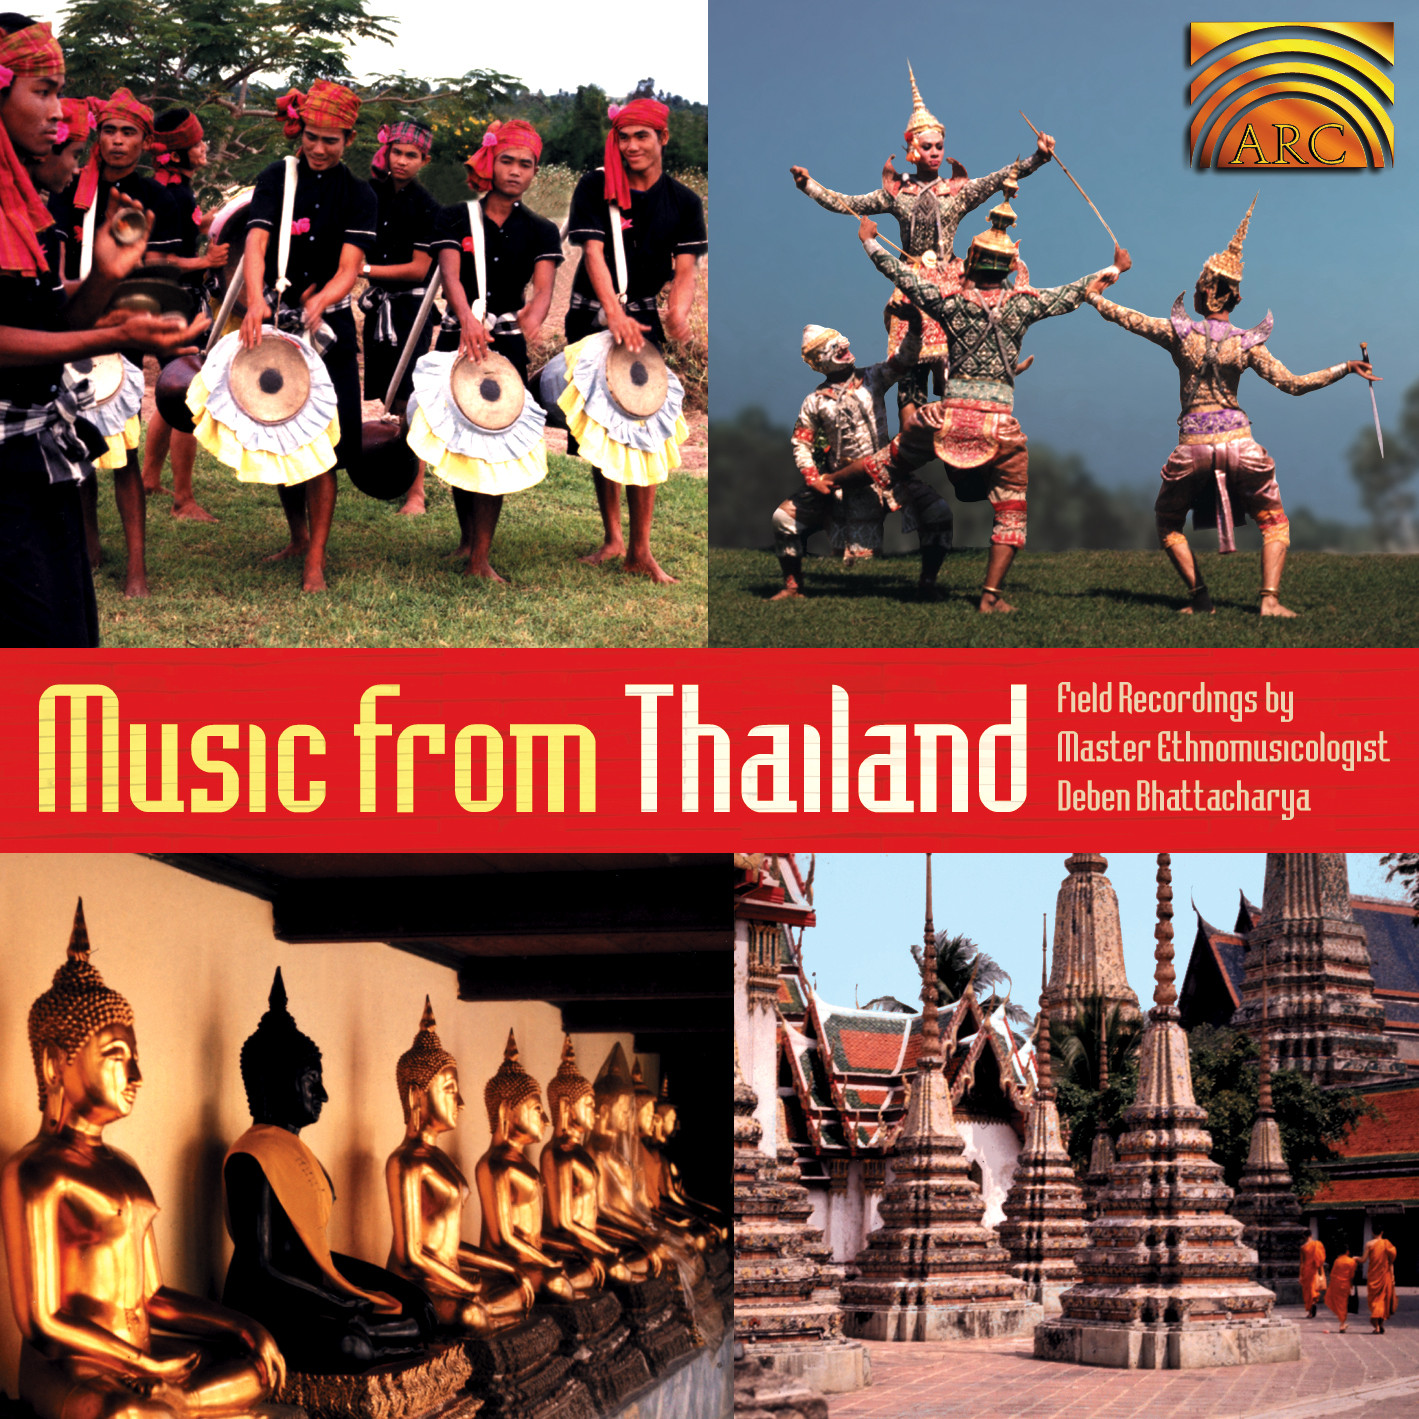 EUCD1557 Music from Thailand - Field Recordings by Deben Bhattacharya